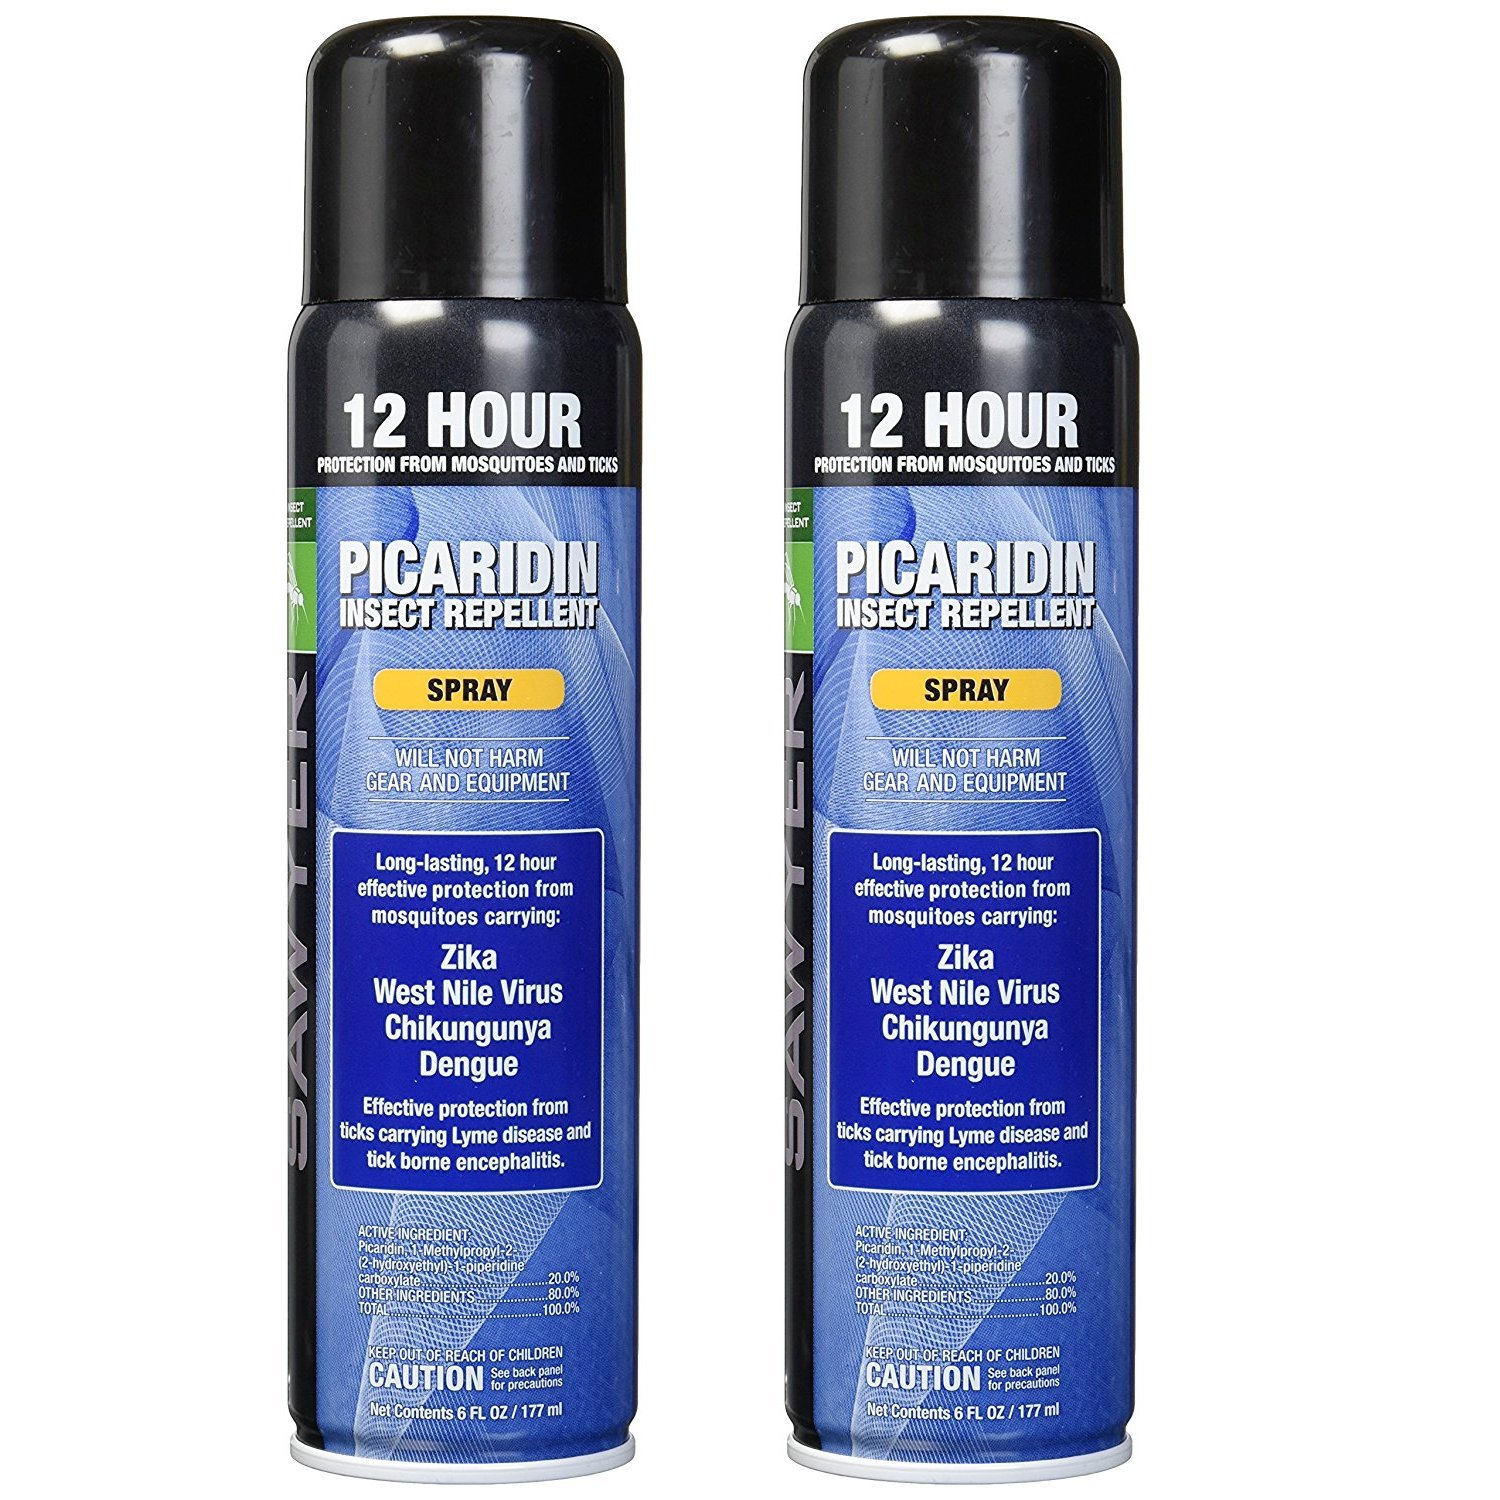 Sawyer Products SP5762 Premium Insect Repellent with 20% Picaridin, Spray, Twin Pack, 6-Ounce by Sawyer Products